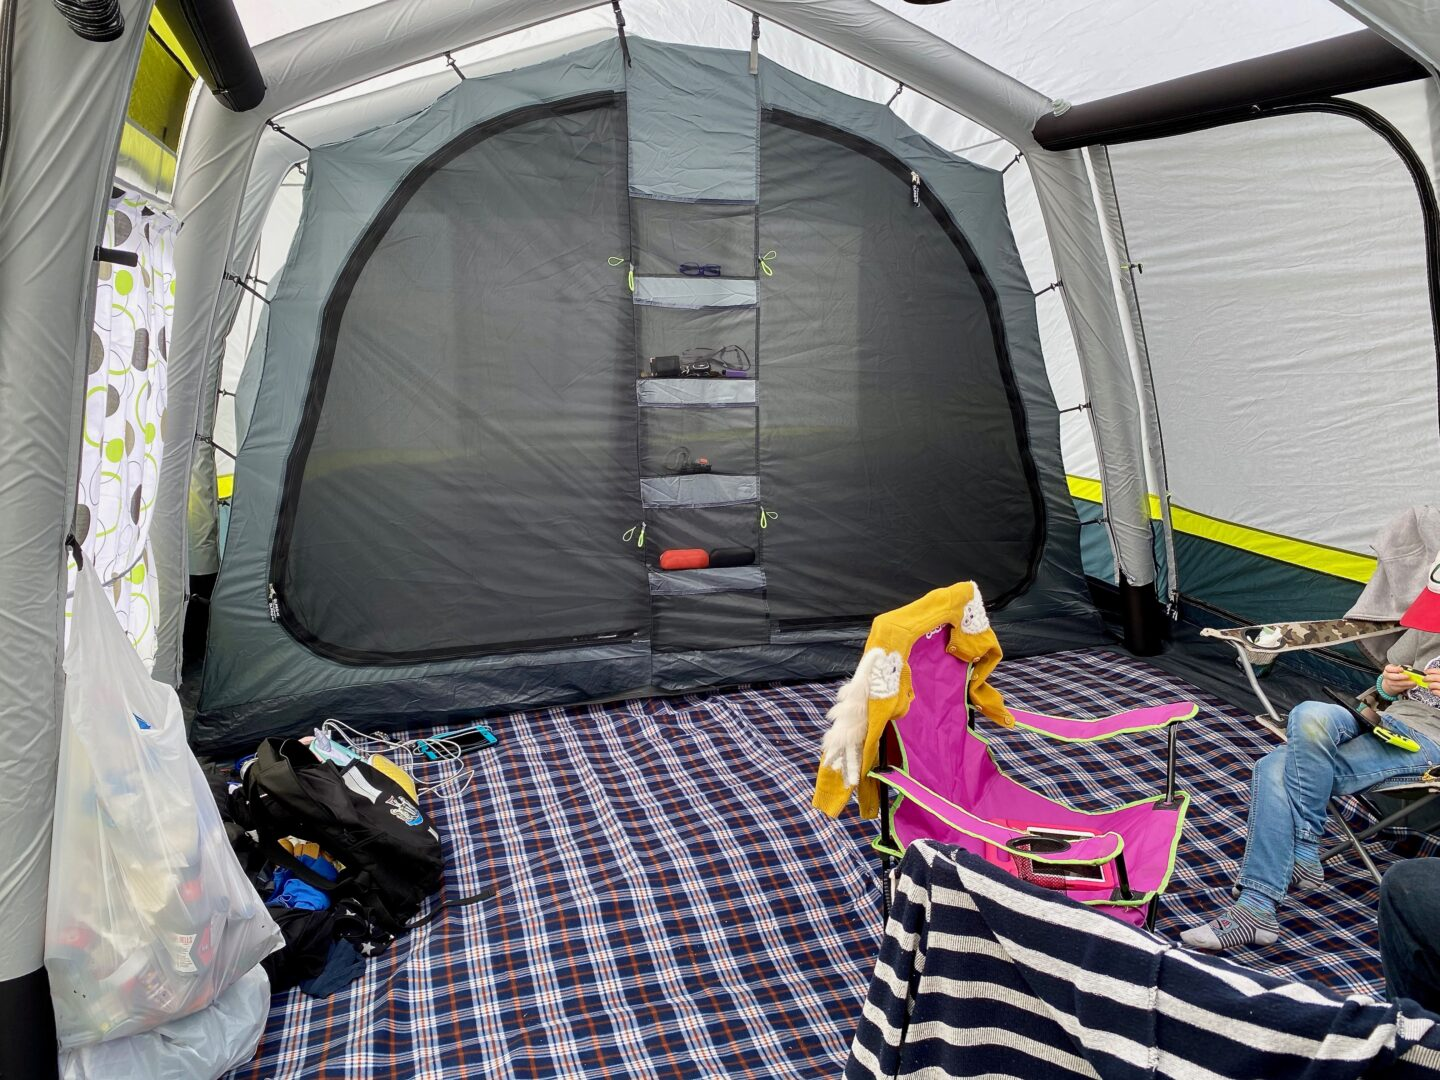 The inside of a tent with storage pockets and a tent carpet